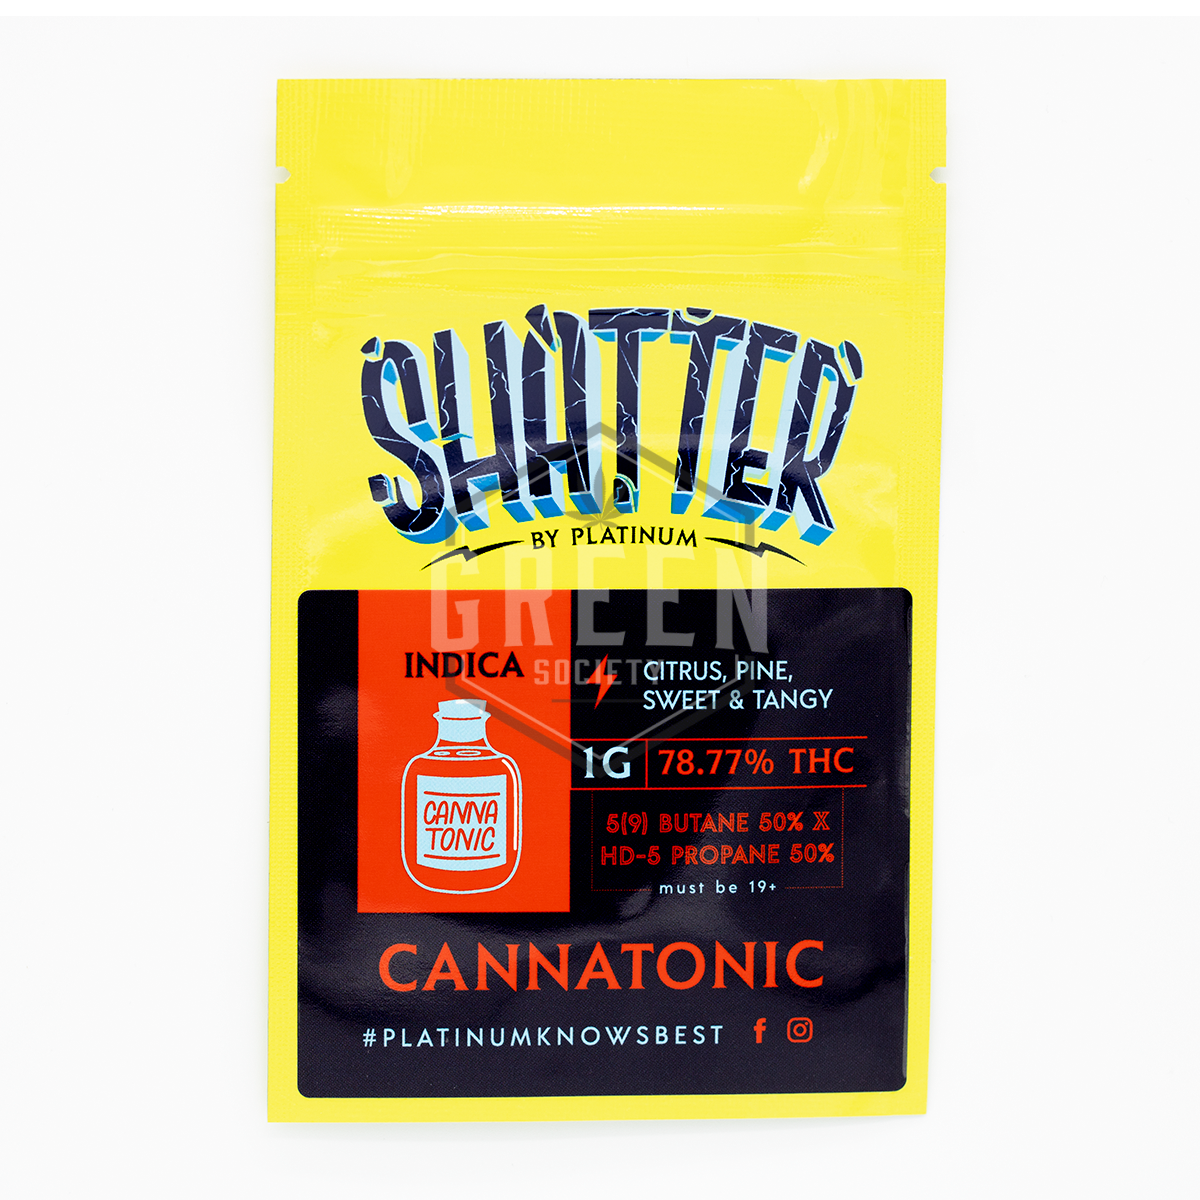 Cannatonic Shatter by Platinum by Green Society - Image © 2019 Green Society. All Rights Reserved.